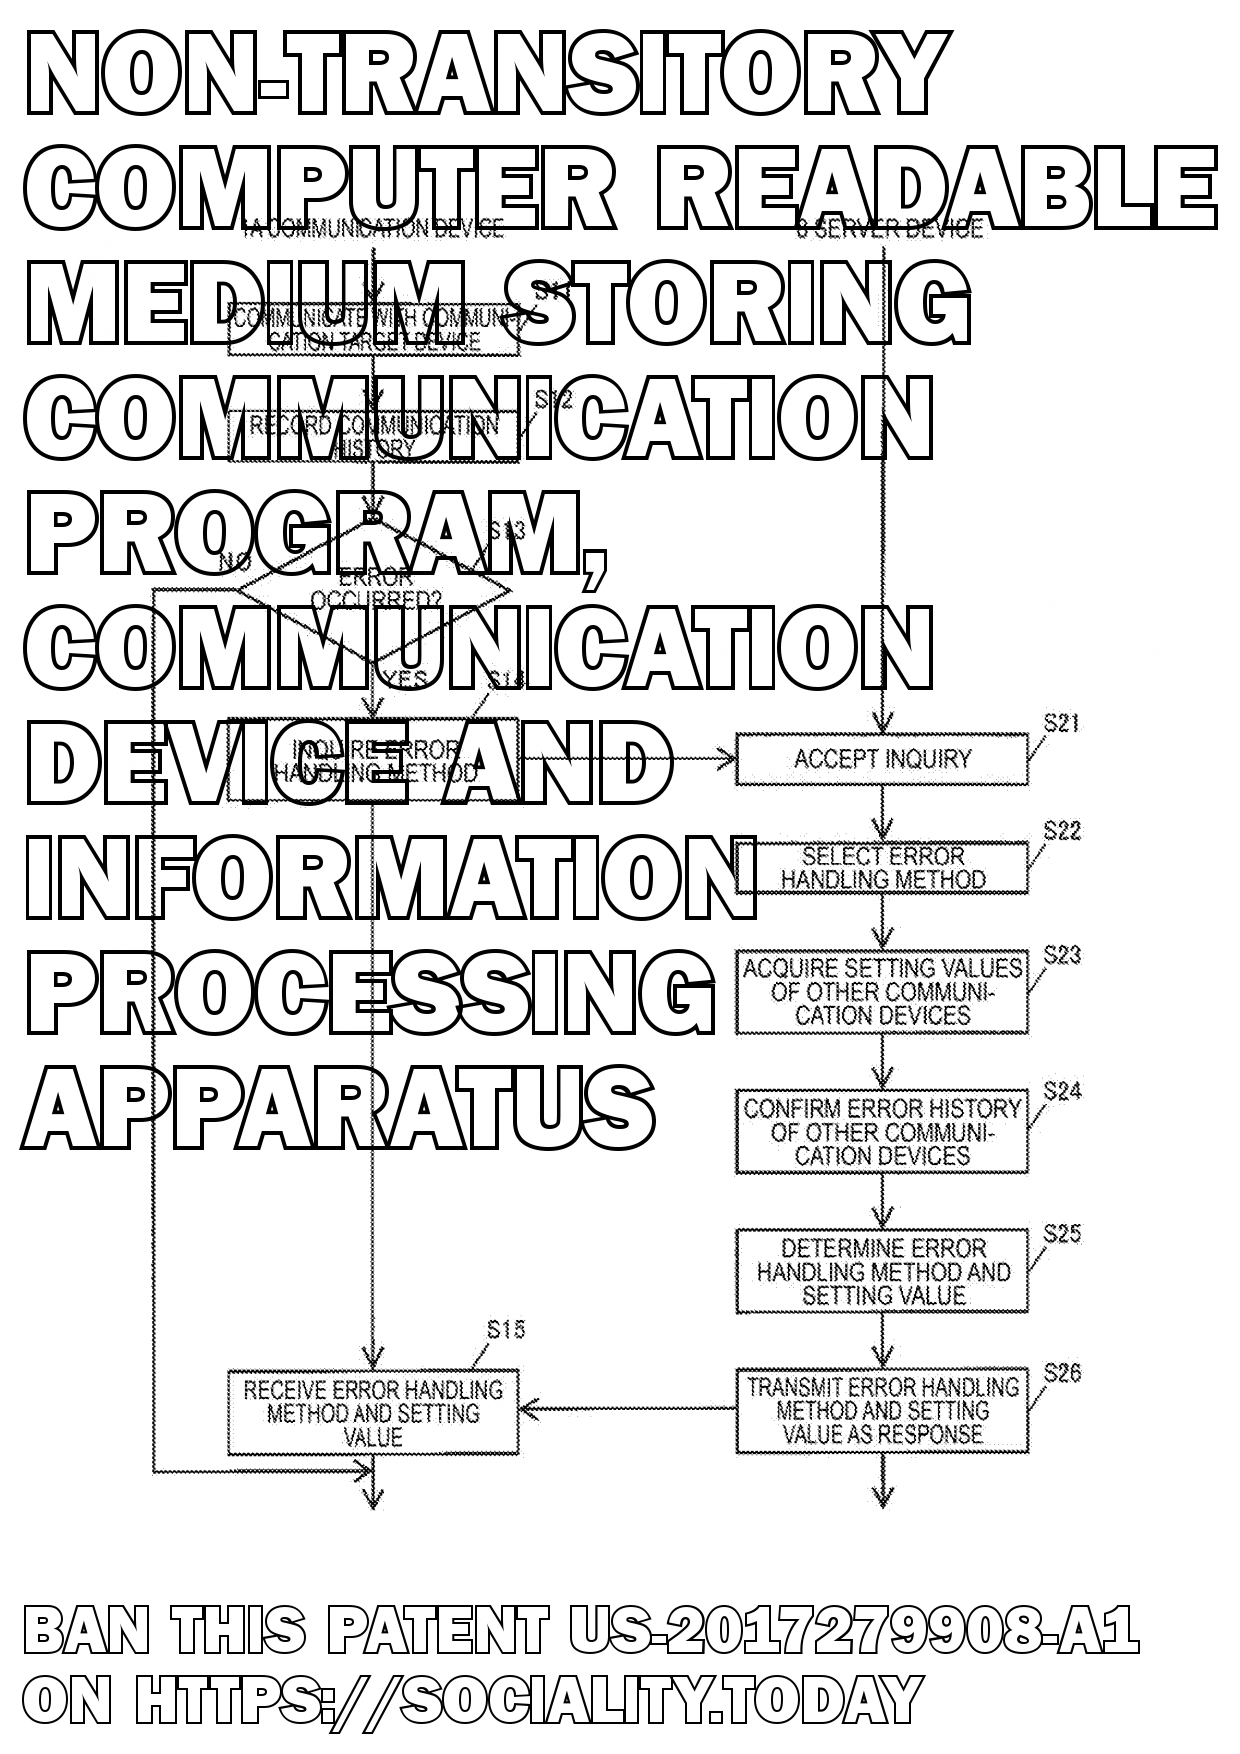 Non-transitory computer readable medium storing communication program, communication device and information processing apparatus  - US-2017279908-A1